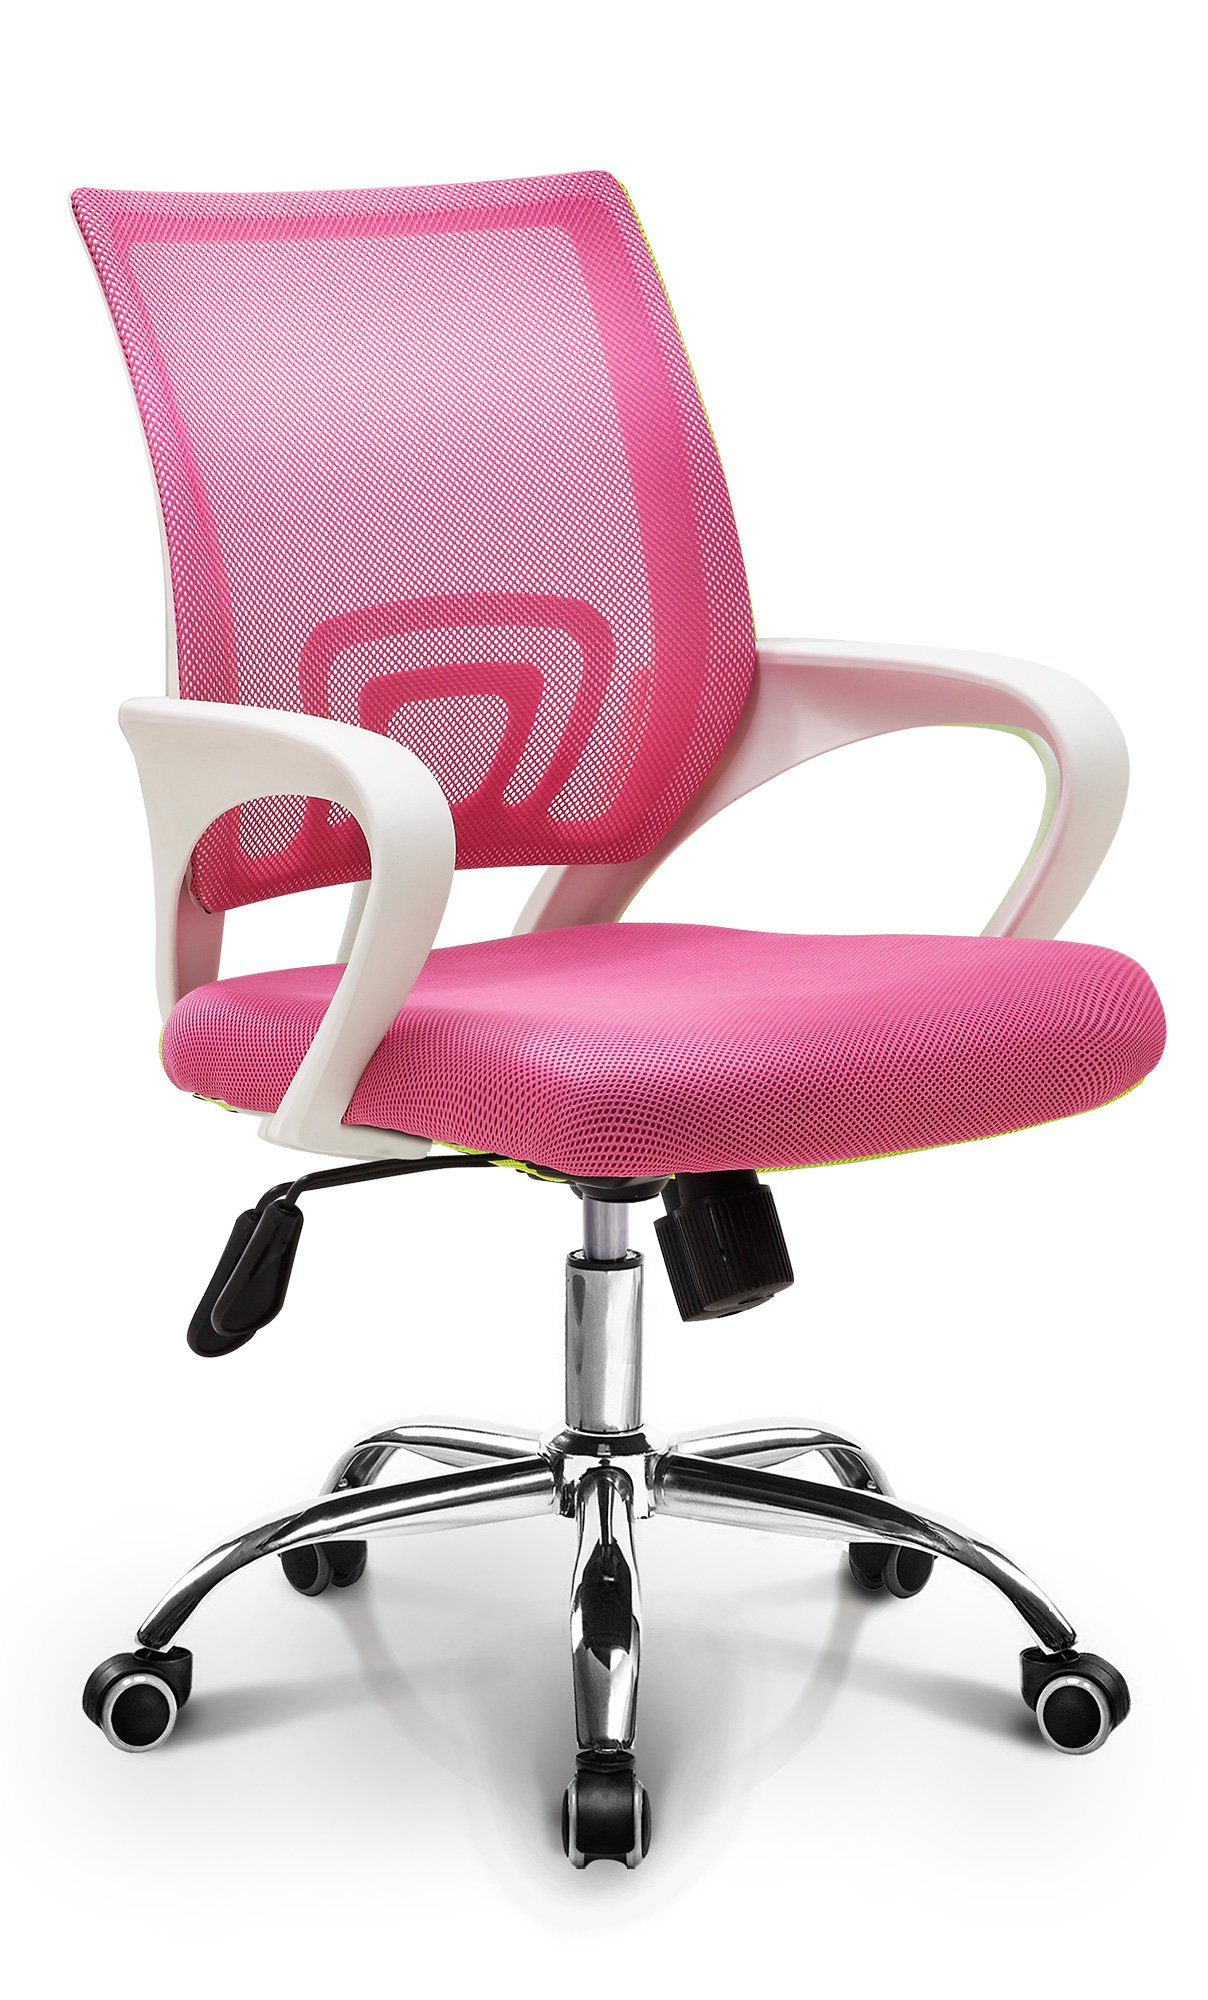 Neo Chair Fashionable Home Office Chair Conference Room Chair Desk Task Computer Mesh Chair : Ergonomic Lumbar Support Swivel Adjustable Tilt Mid Back Wheel (Fashion Mesh Pink) by Neo Chair